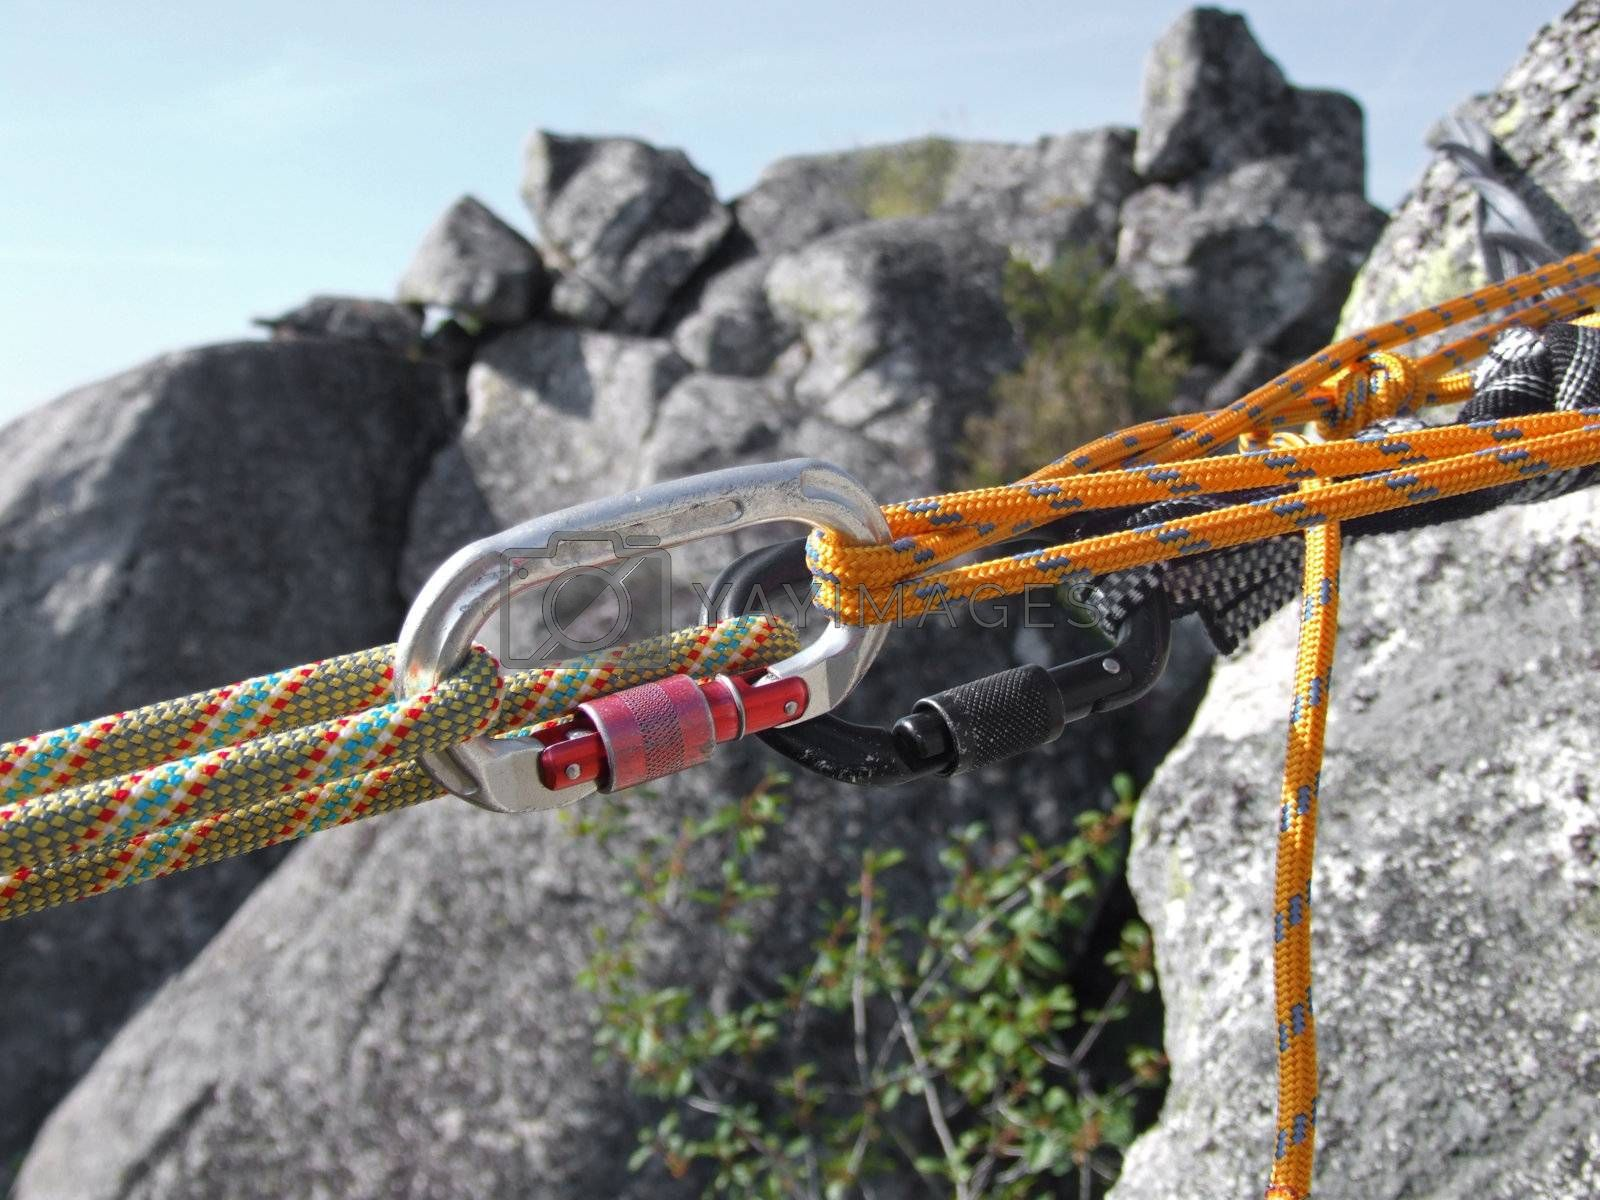 Equipment for mountain climbing and rappelling by PauloResende